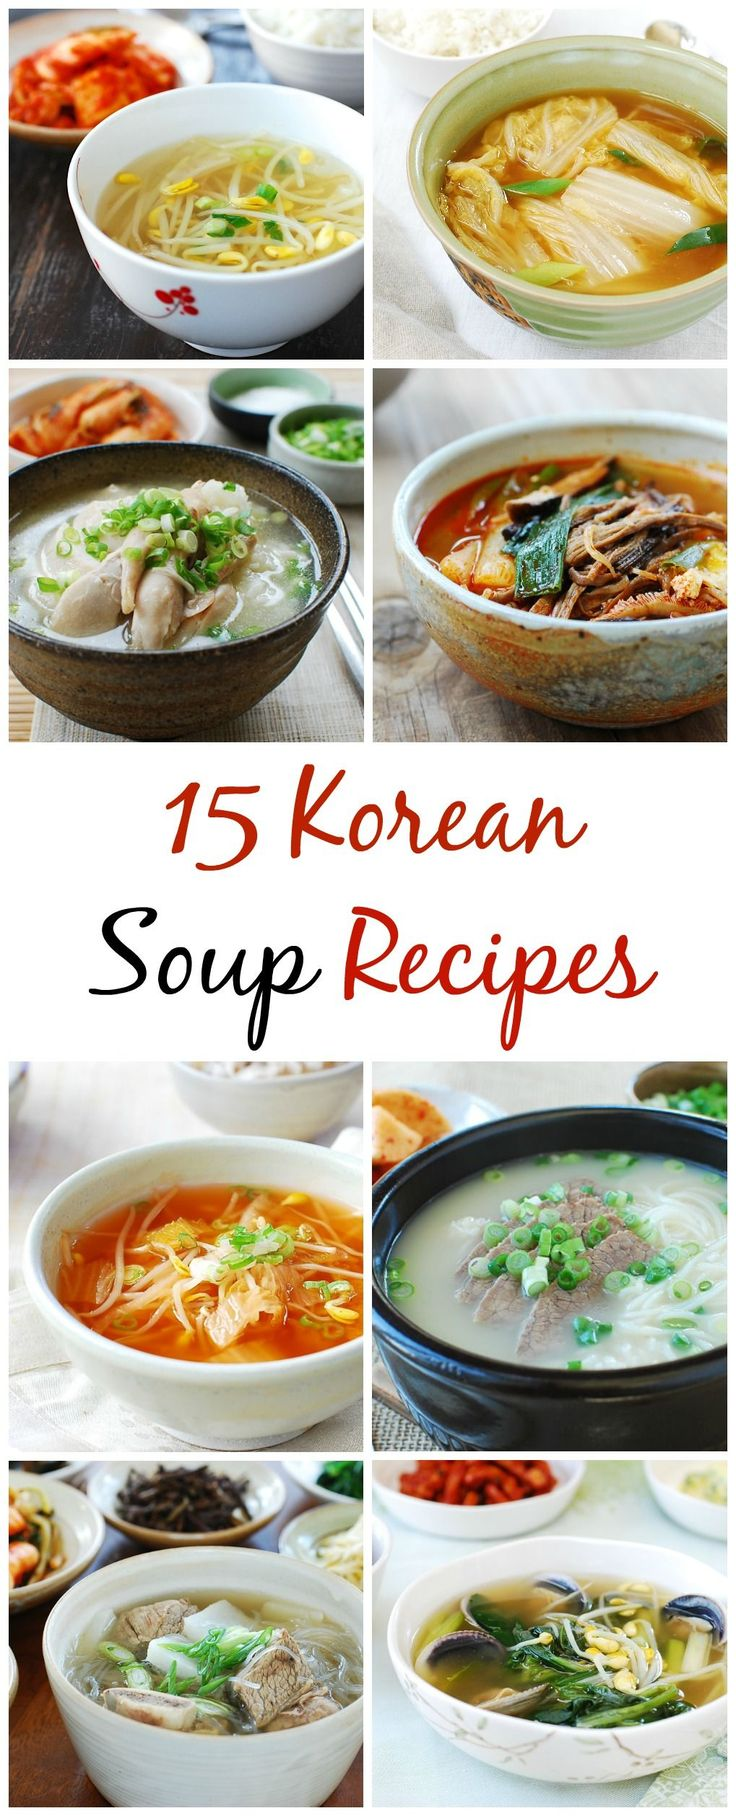 15 Korean Soup Recipes! {Read|Find more} about {korean cuisine|korean food|korea food|south korean food} {clicking| - clic} link below: